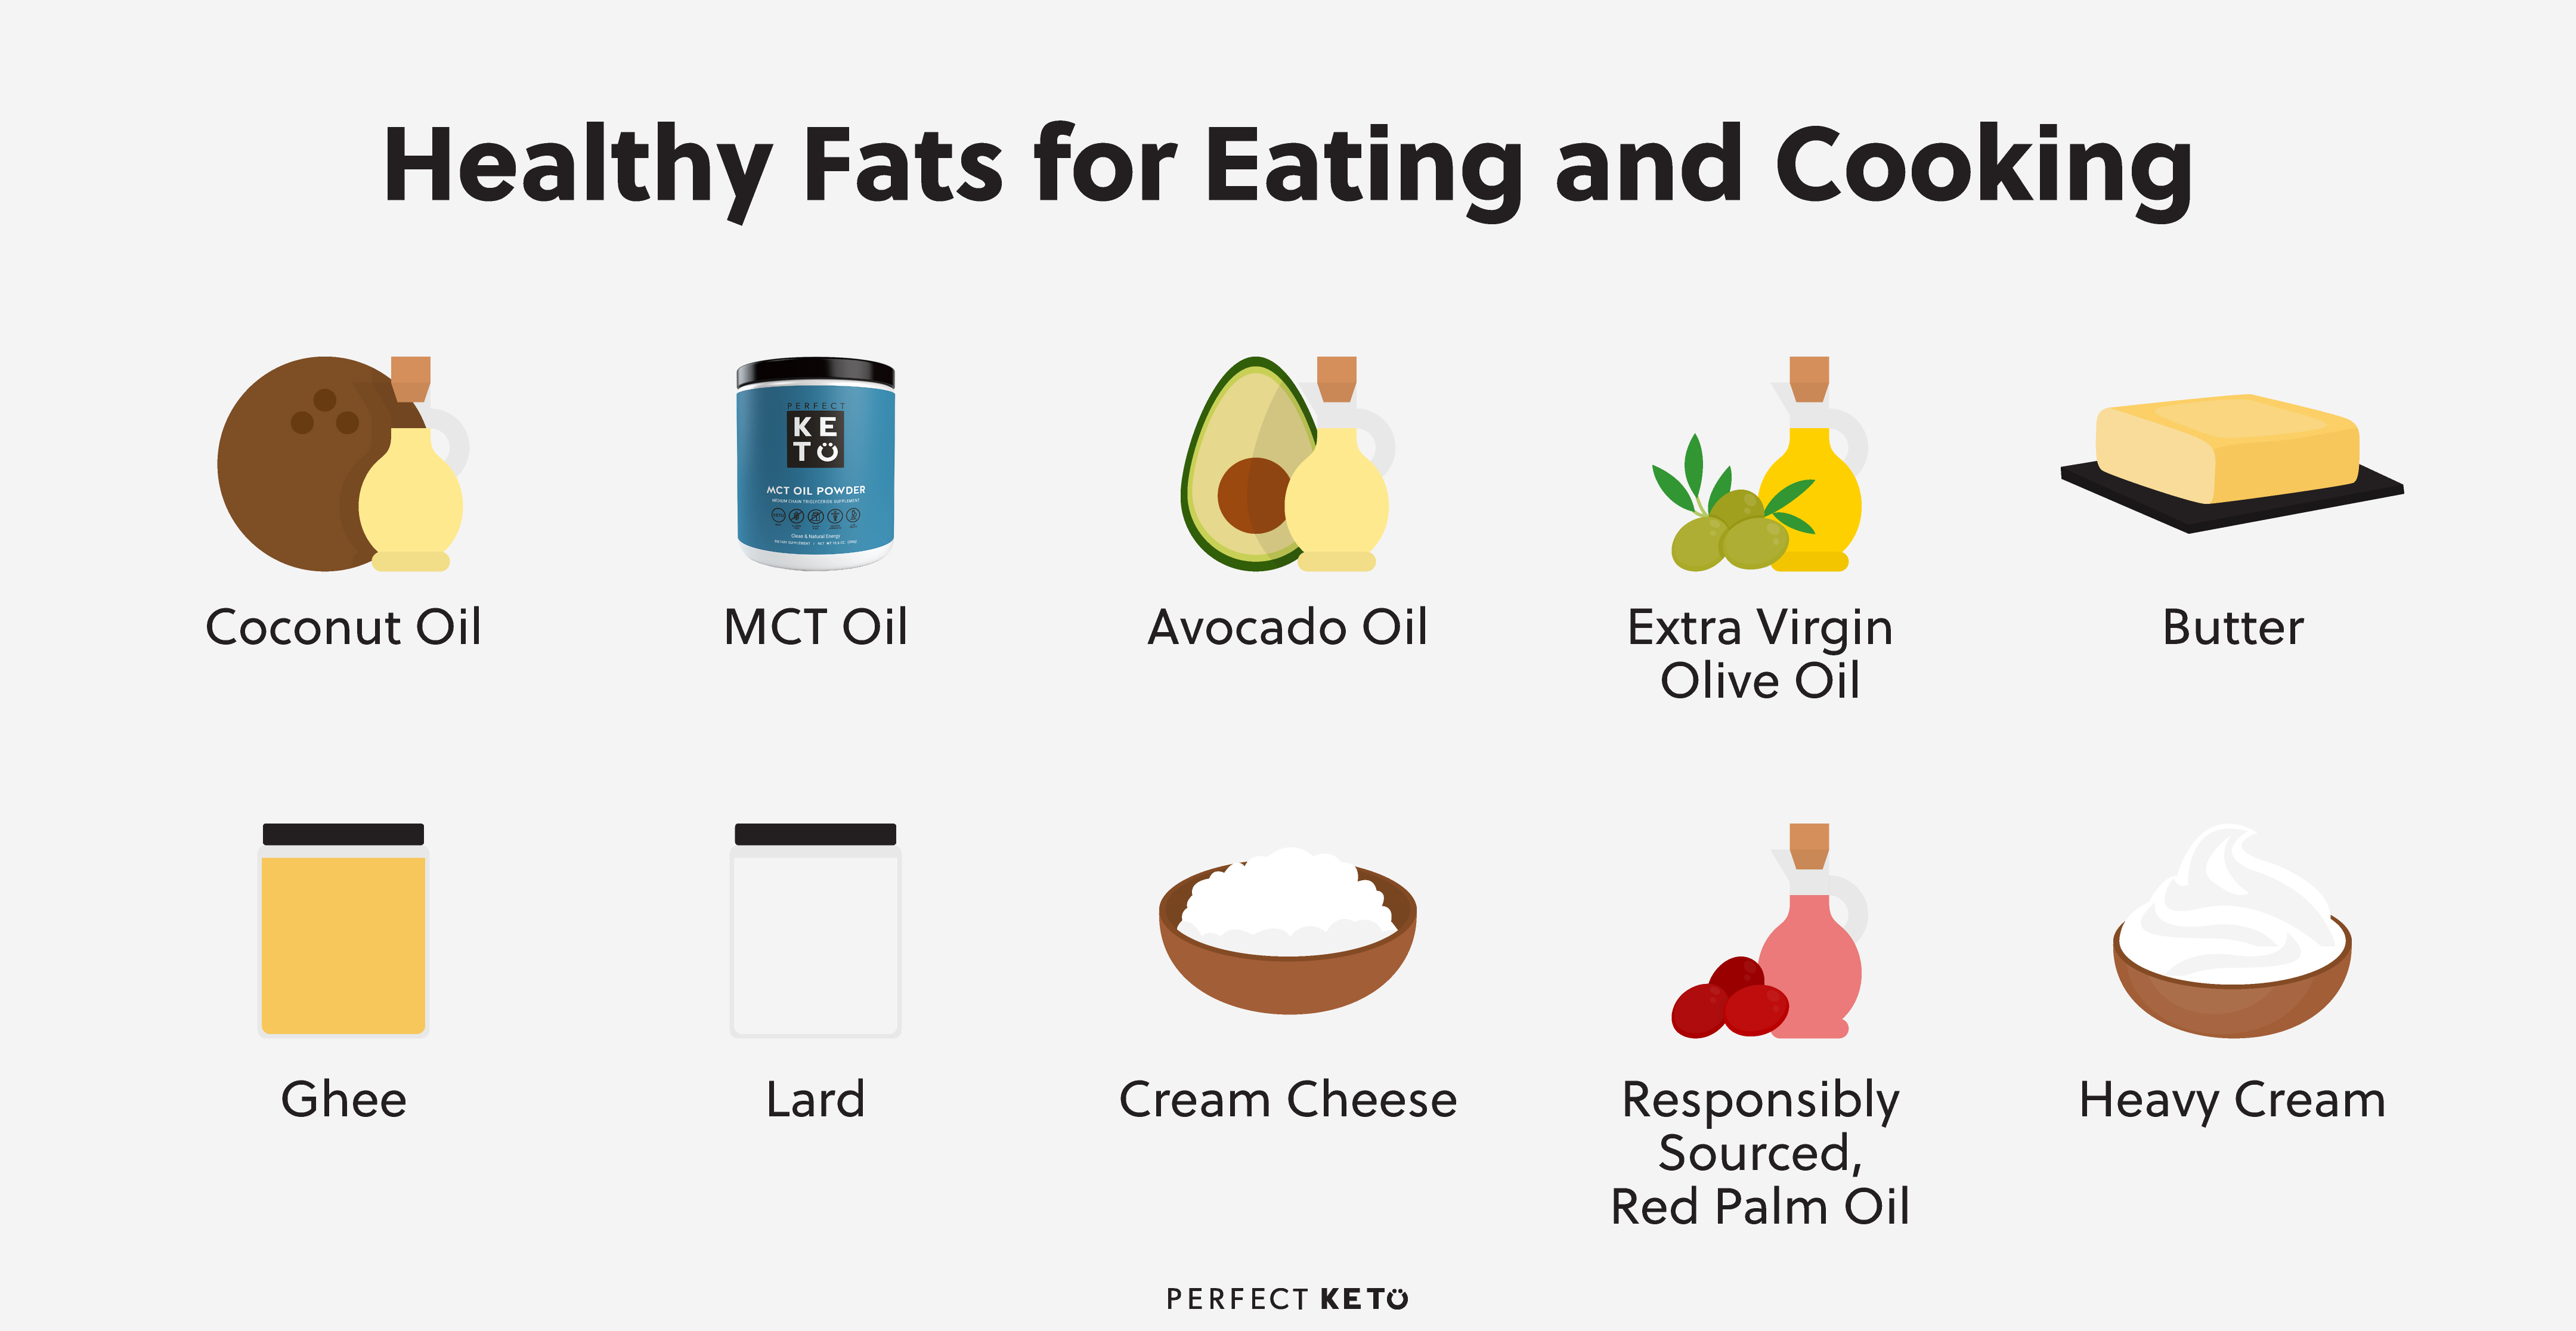 healthy-fats-for-eating-and-cooking.jpg